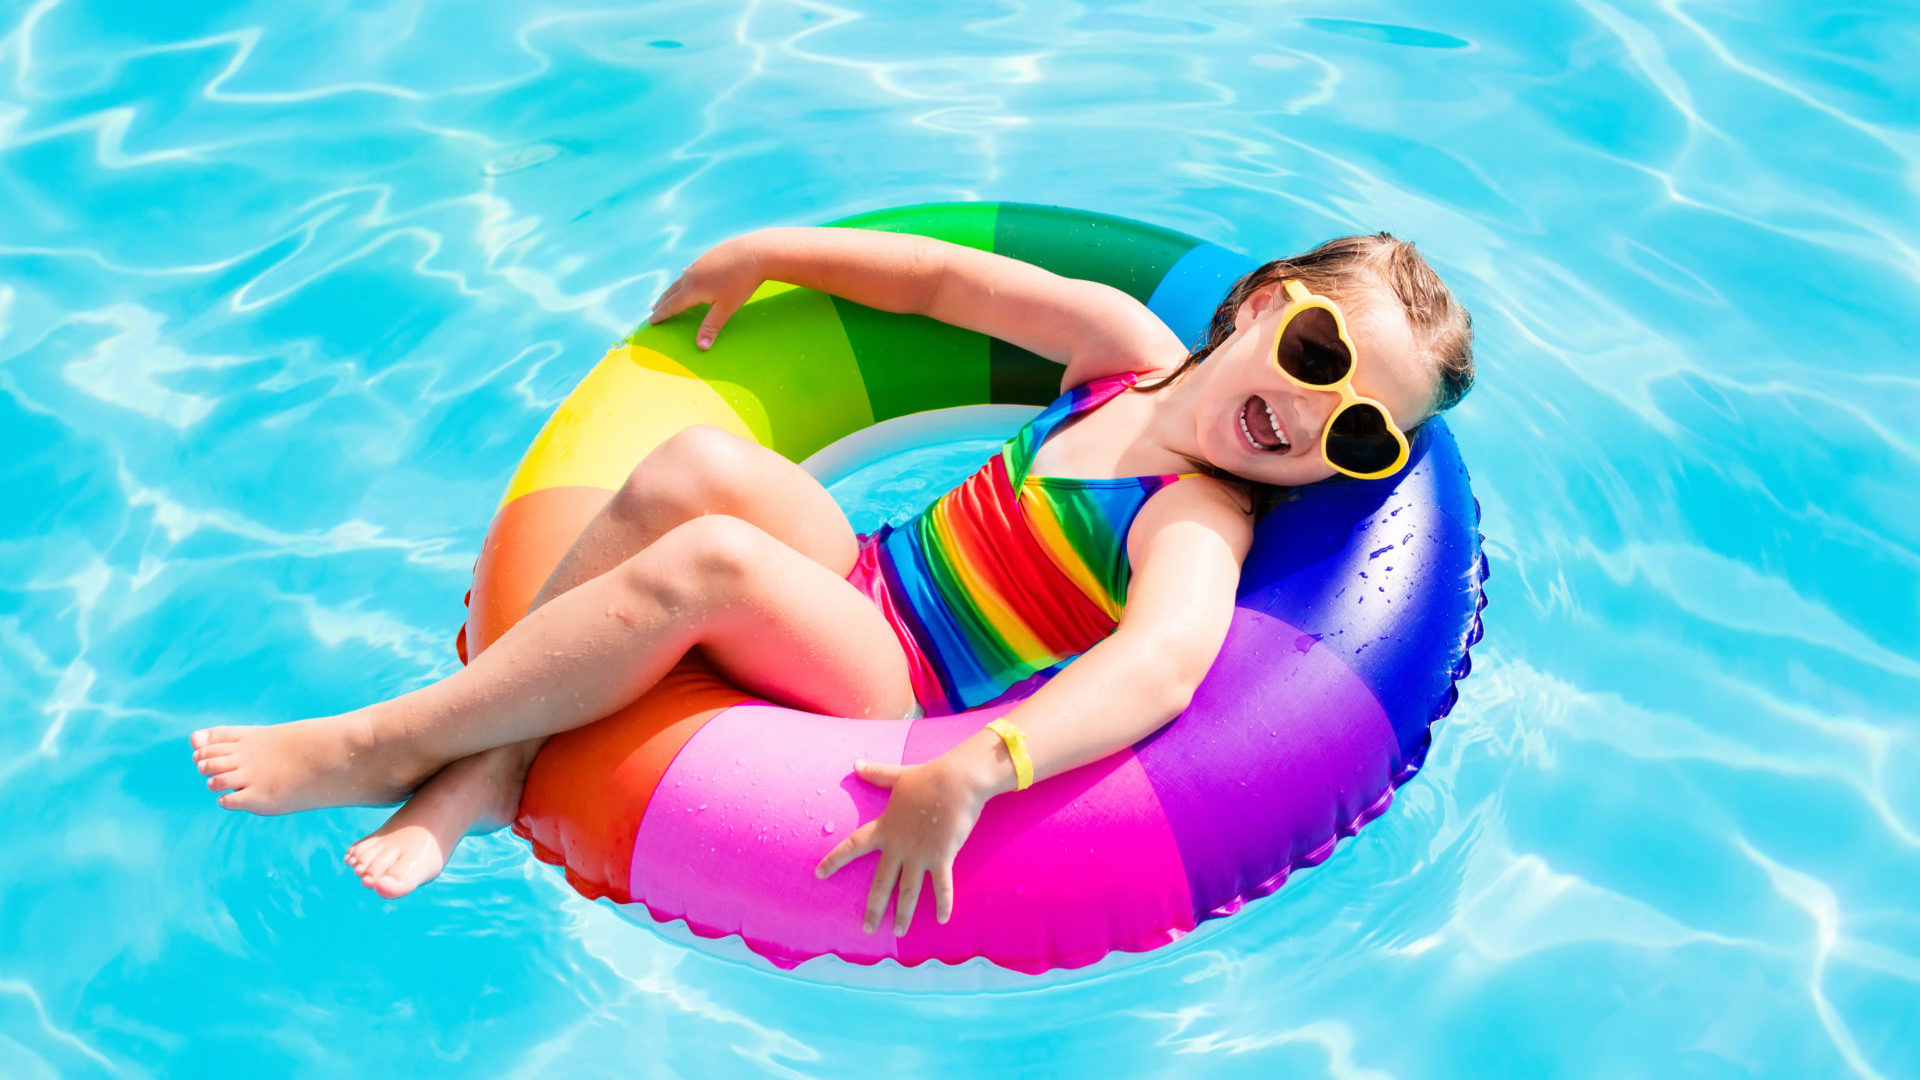 A young girl relaxes in the pool on a rainbow floaty.